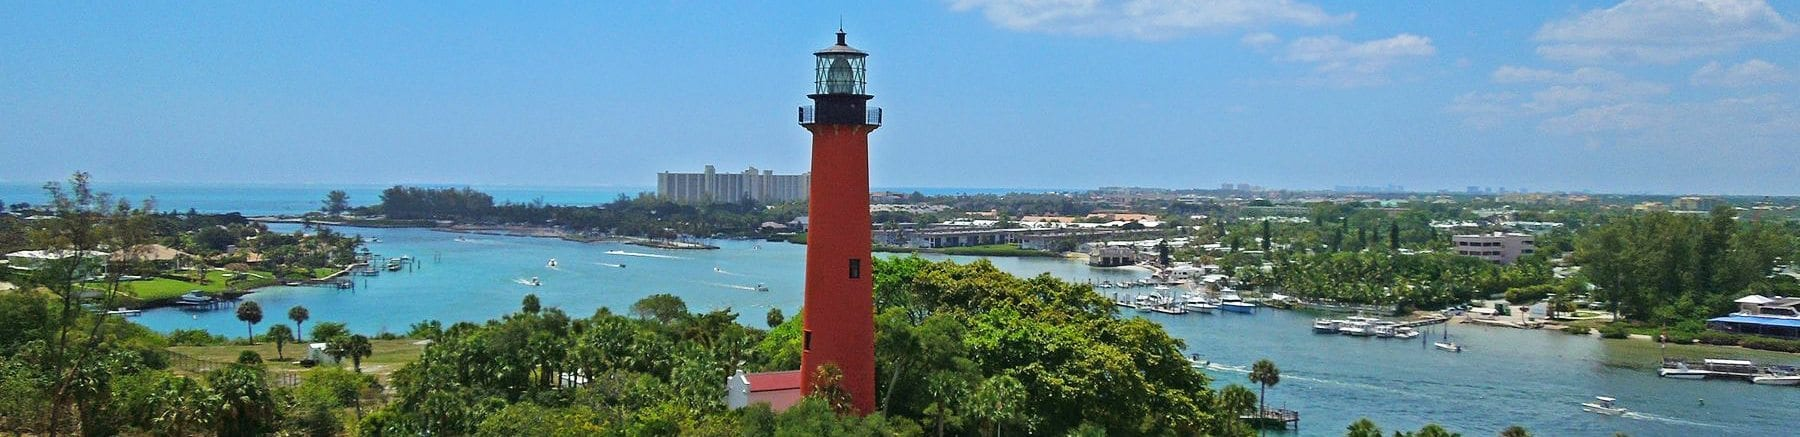 Image of Jupiter Beach Light House